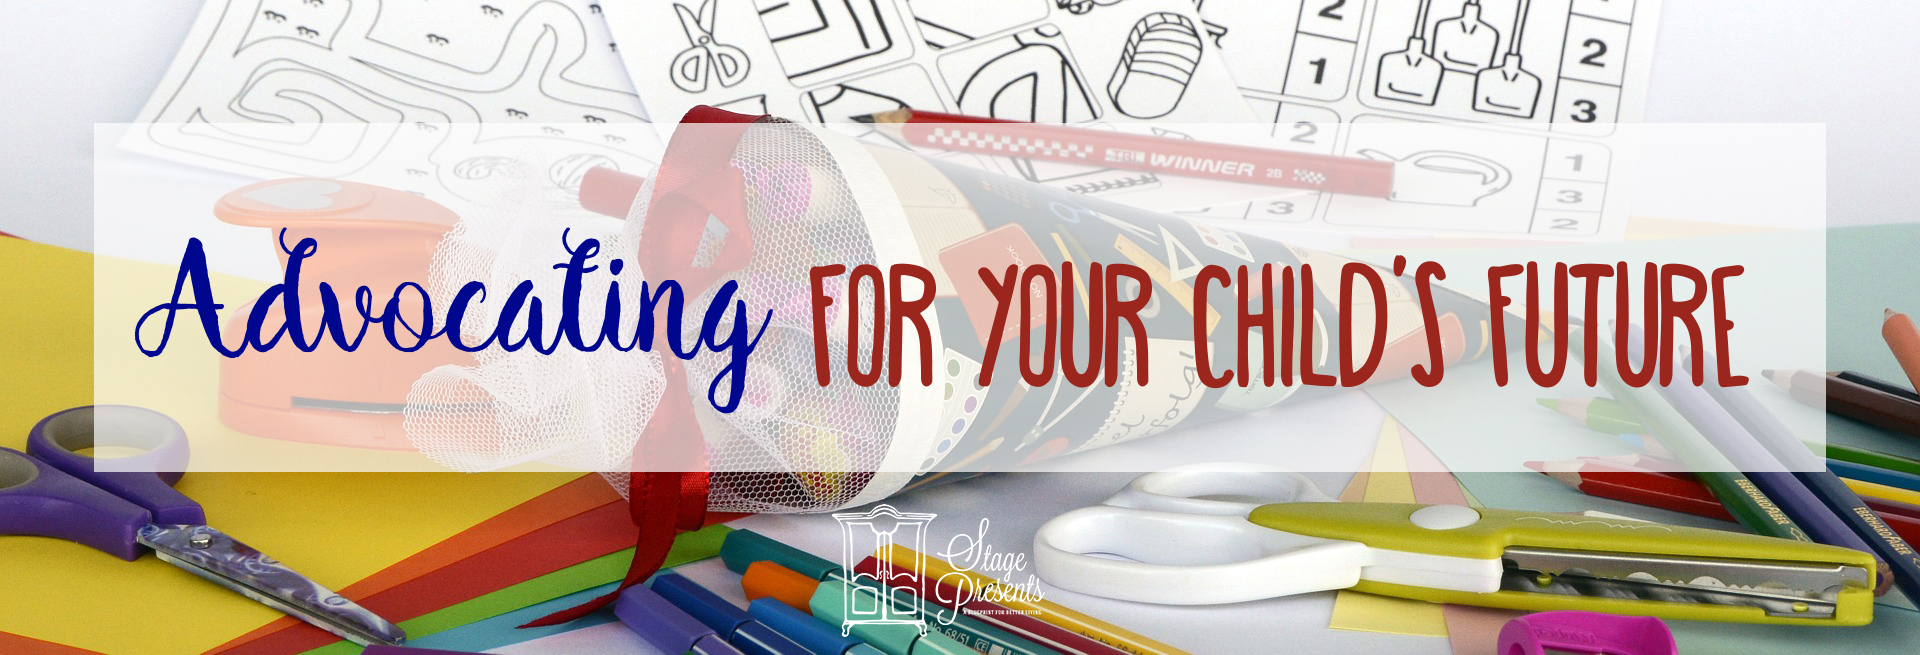 Advocating for Your Child's Future - Does your Child require an IEP? Do you need to know what lies ahead of you? Be an advocate for your child's future with these tips from a fellow IEP Mom.